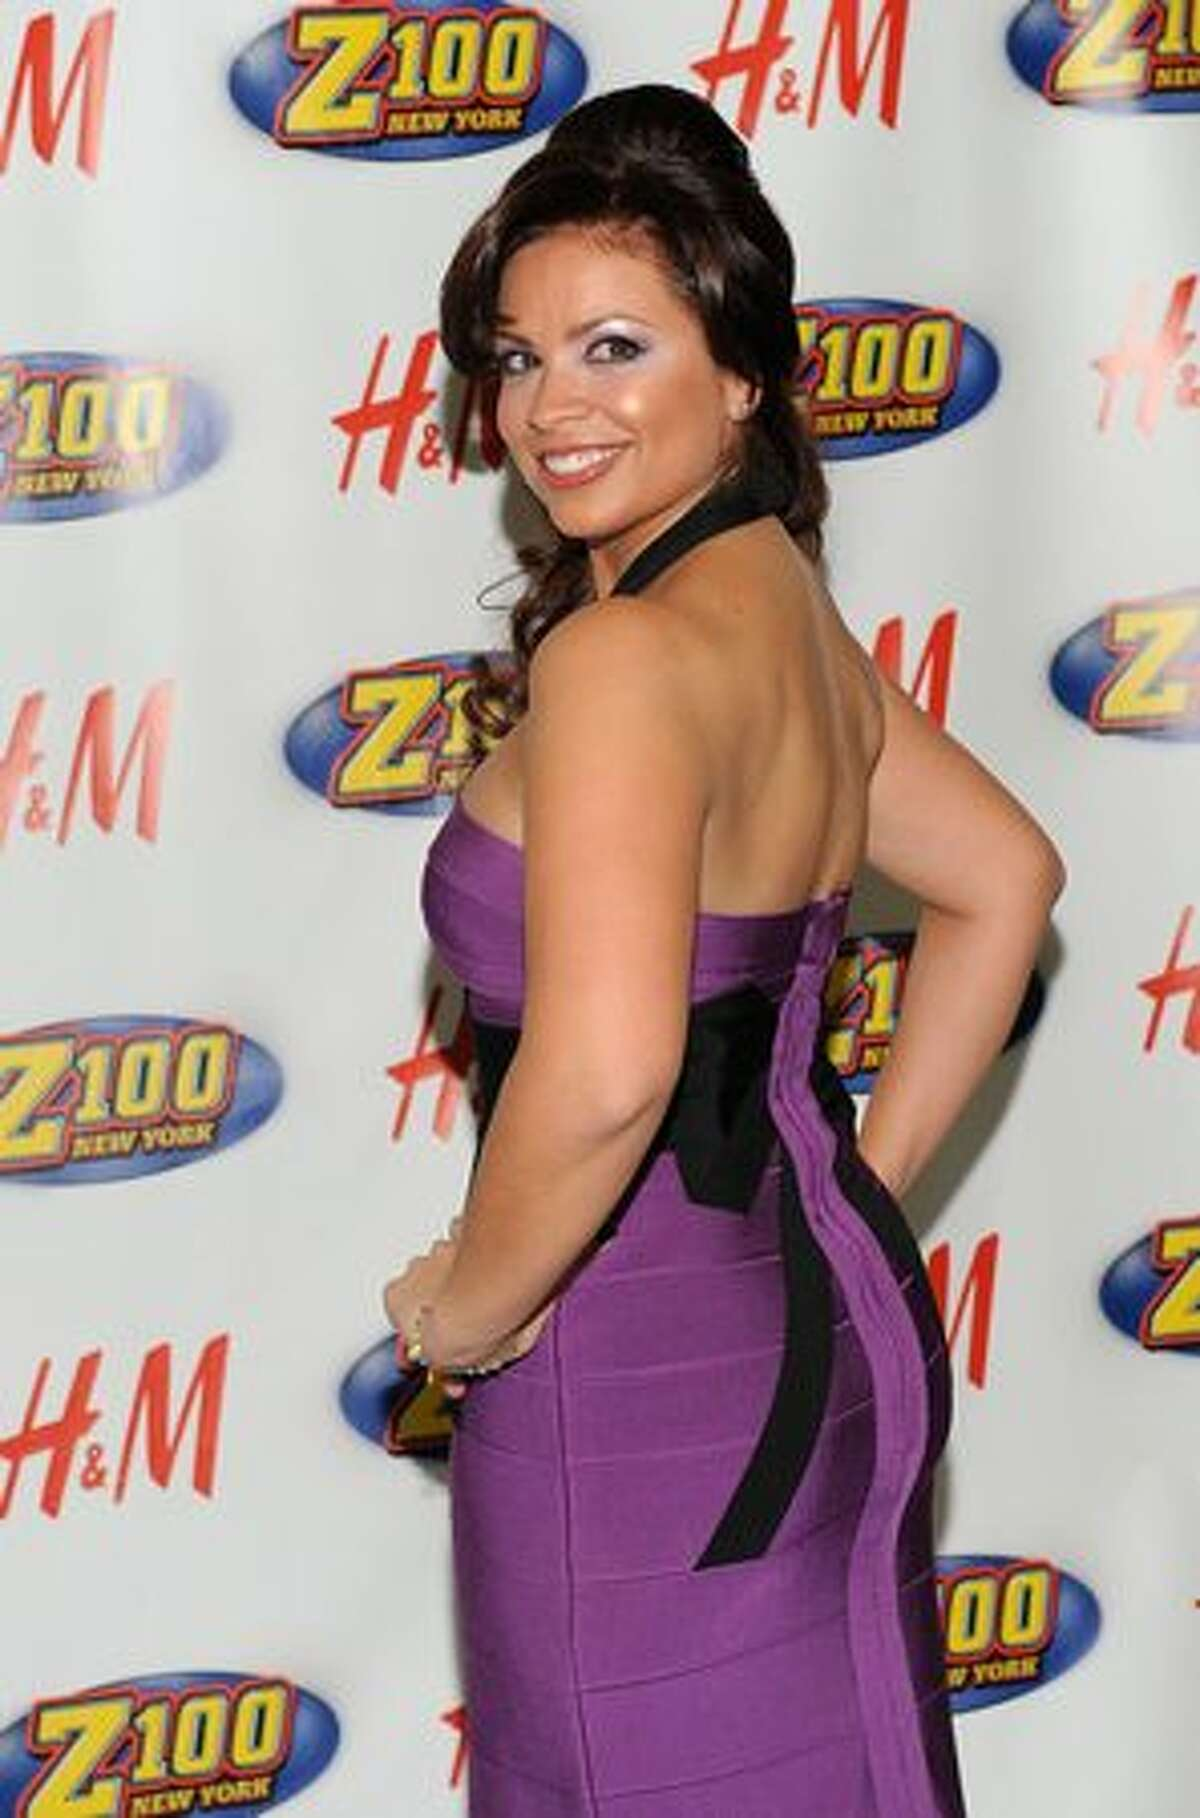 Radio personality Carolina Bermudez attends Z100's Jingle Ball 2009 at Madison Square Garden on December 11, 2009 in New York City.